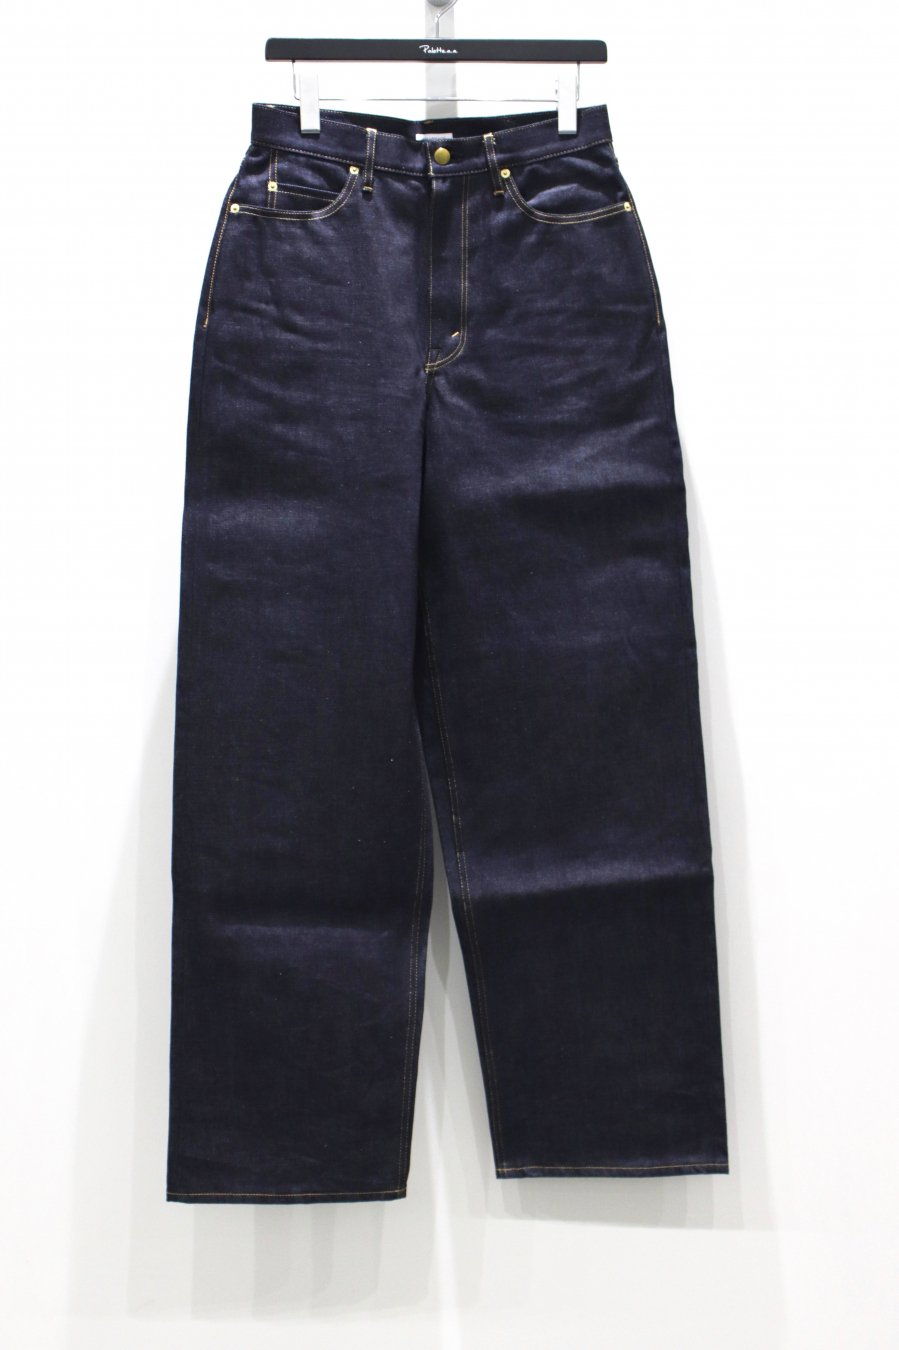 SOLARIS  SHAPE BOOTY DENIM PANTS QUATERHORSE<img class='new_mark_img2' src='https://img.shop-pro.jp/img/new/icons15.gif' style='border:none;display:inline;margin:0px;padding:0px;width:auto;' />